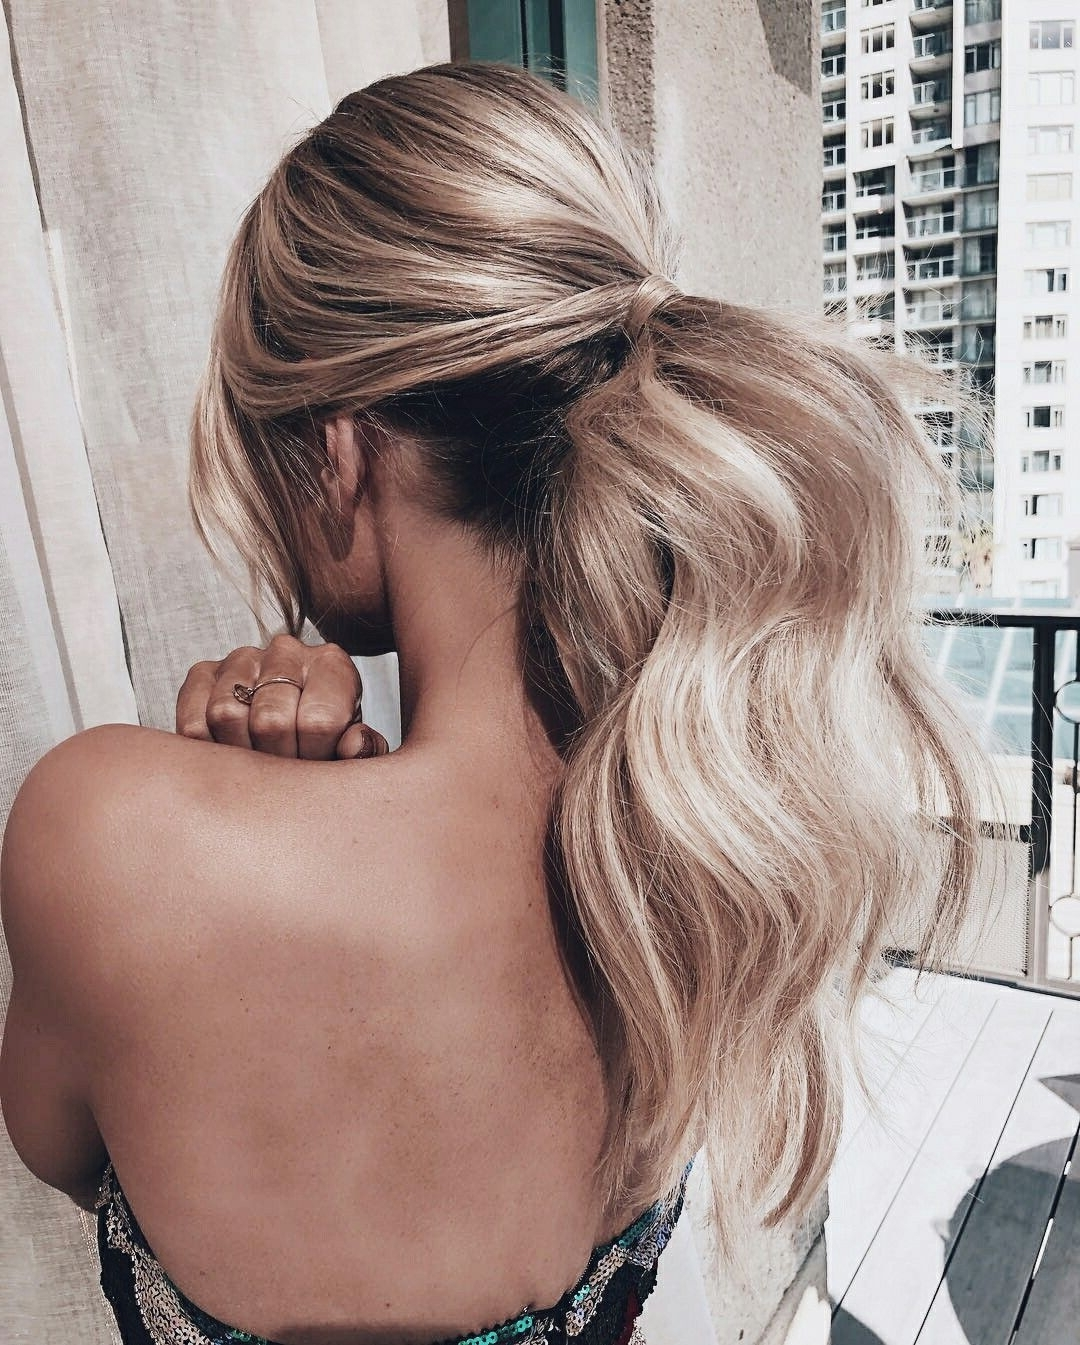 Long Hair, Ponytail, Hairstyle, Loose Curls, Ponytail With Curls Intended For Most Up To Date Honey Blonde Fishtail Look Ponytail Hairstyles (View 8 of 20)